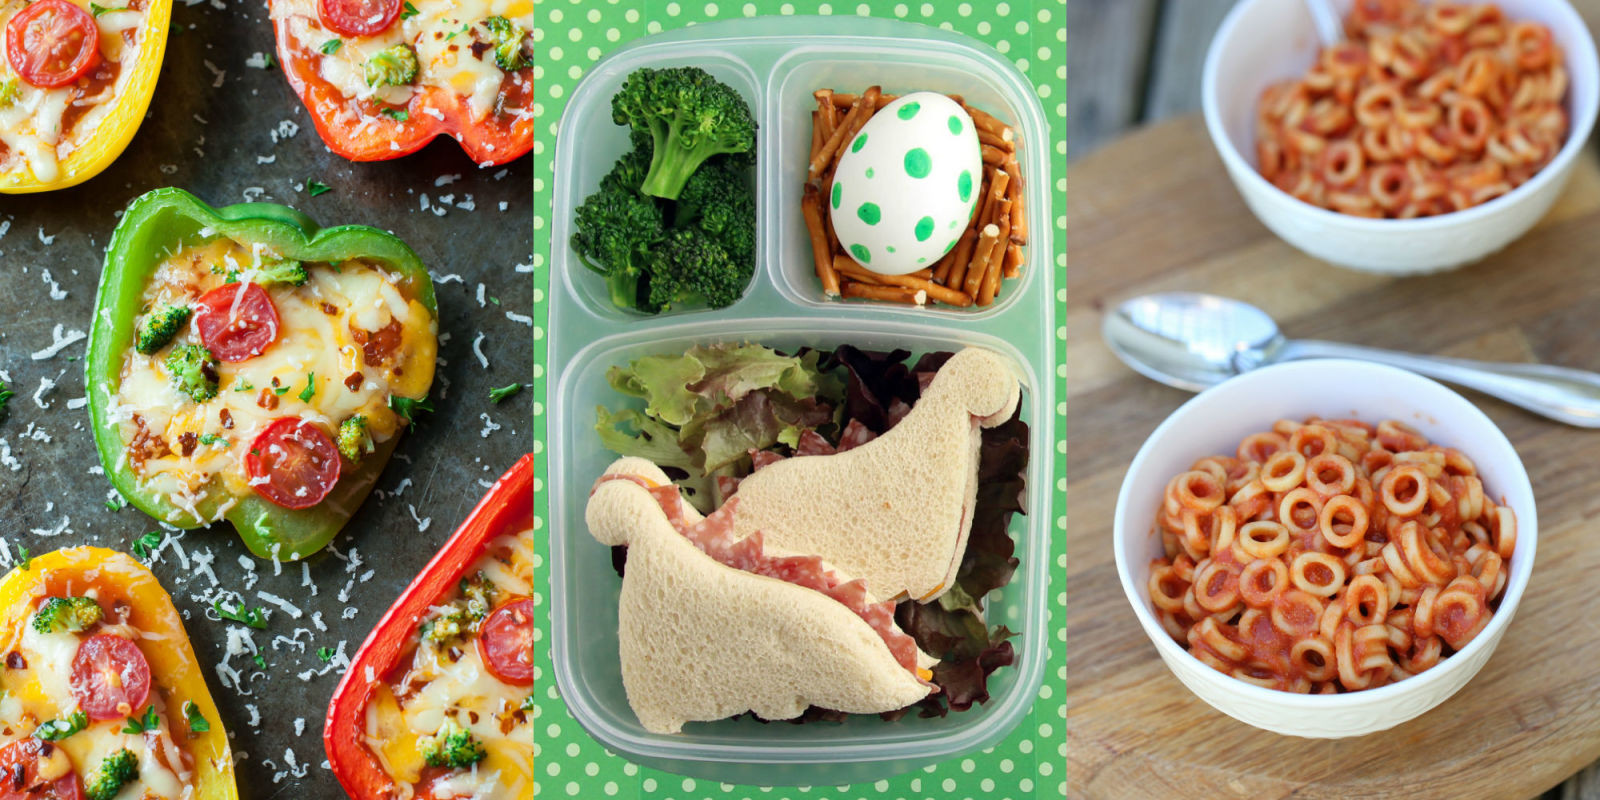 Healthy Lunch Snacks  25 Healthy Lunch Ideas for Kids Healthy Snacks for Kids